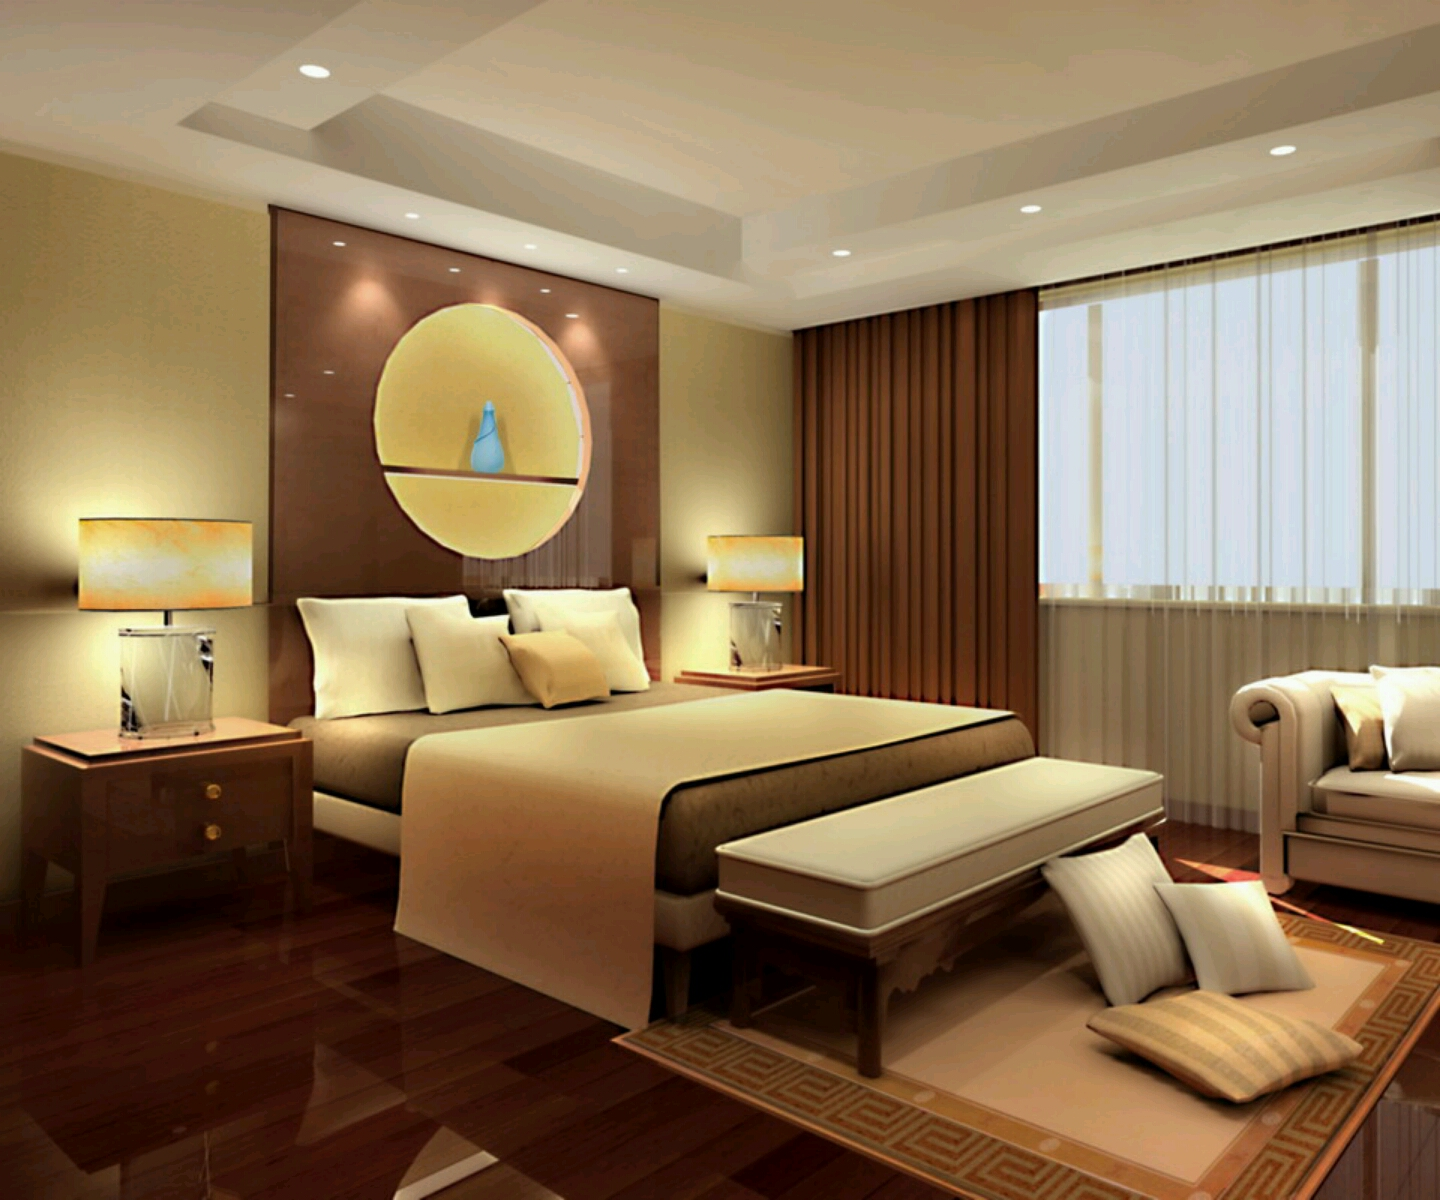 Modern beautiful bedrooms interior decoration designs.